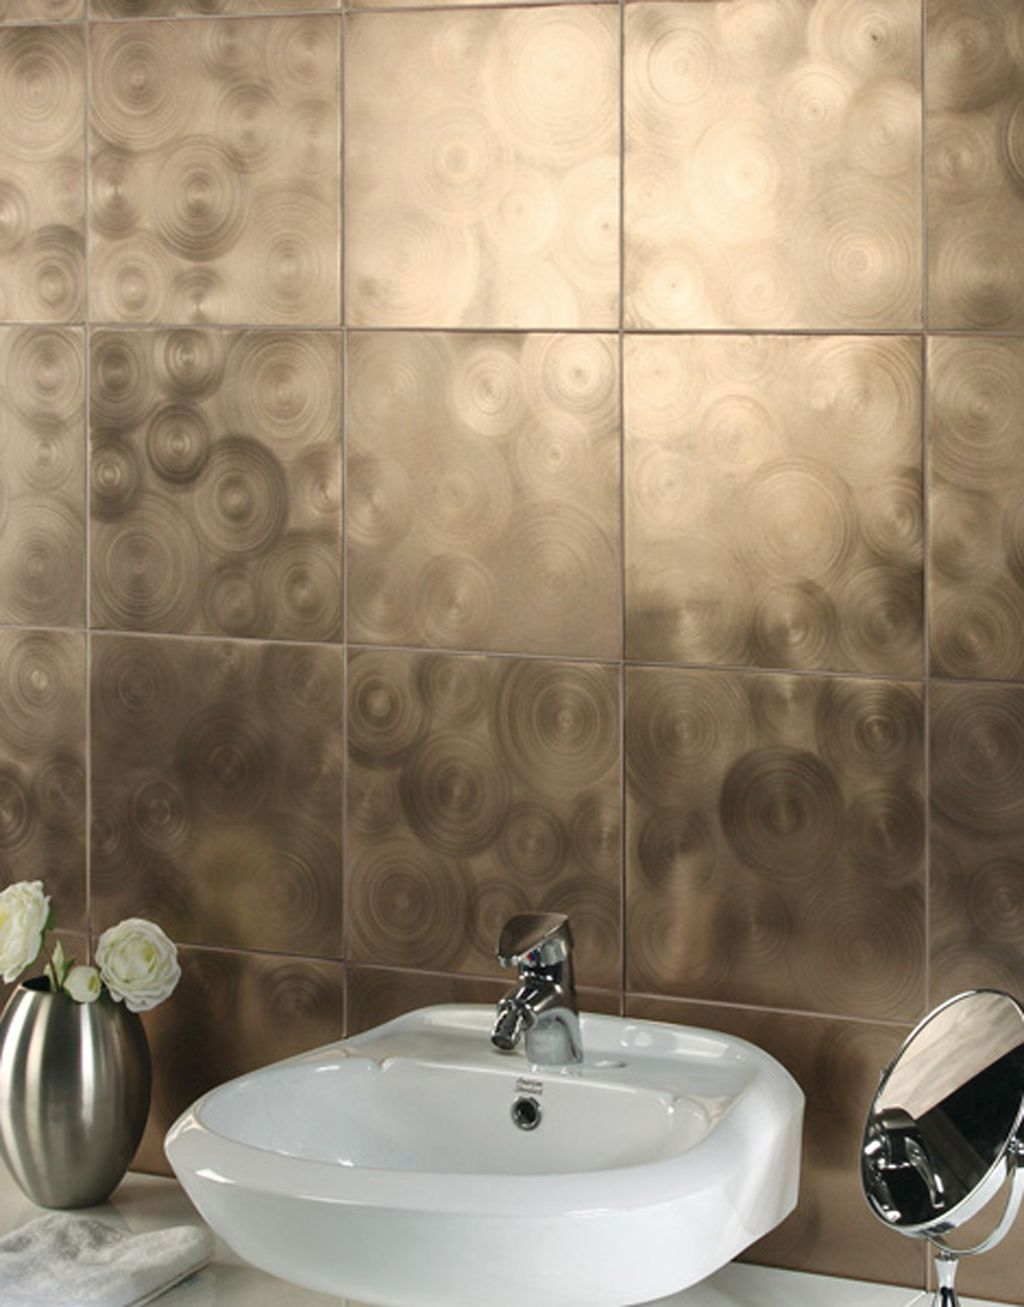 Metallic Bathroom Tile Designs From Evit  Walls  Pinterest Beauteous Bathroom Ceramic Wall Tile Design Decorating Inspiration